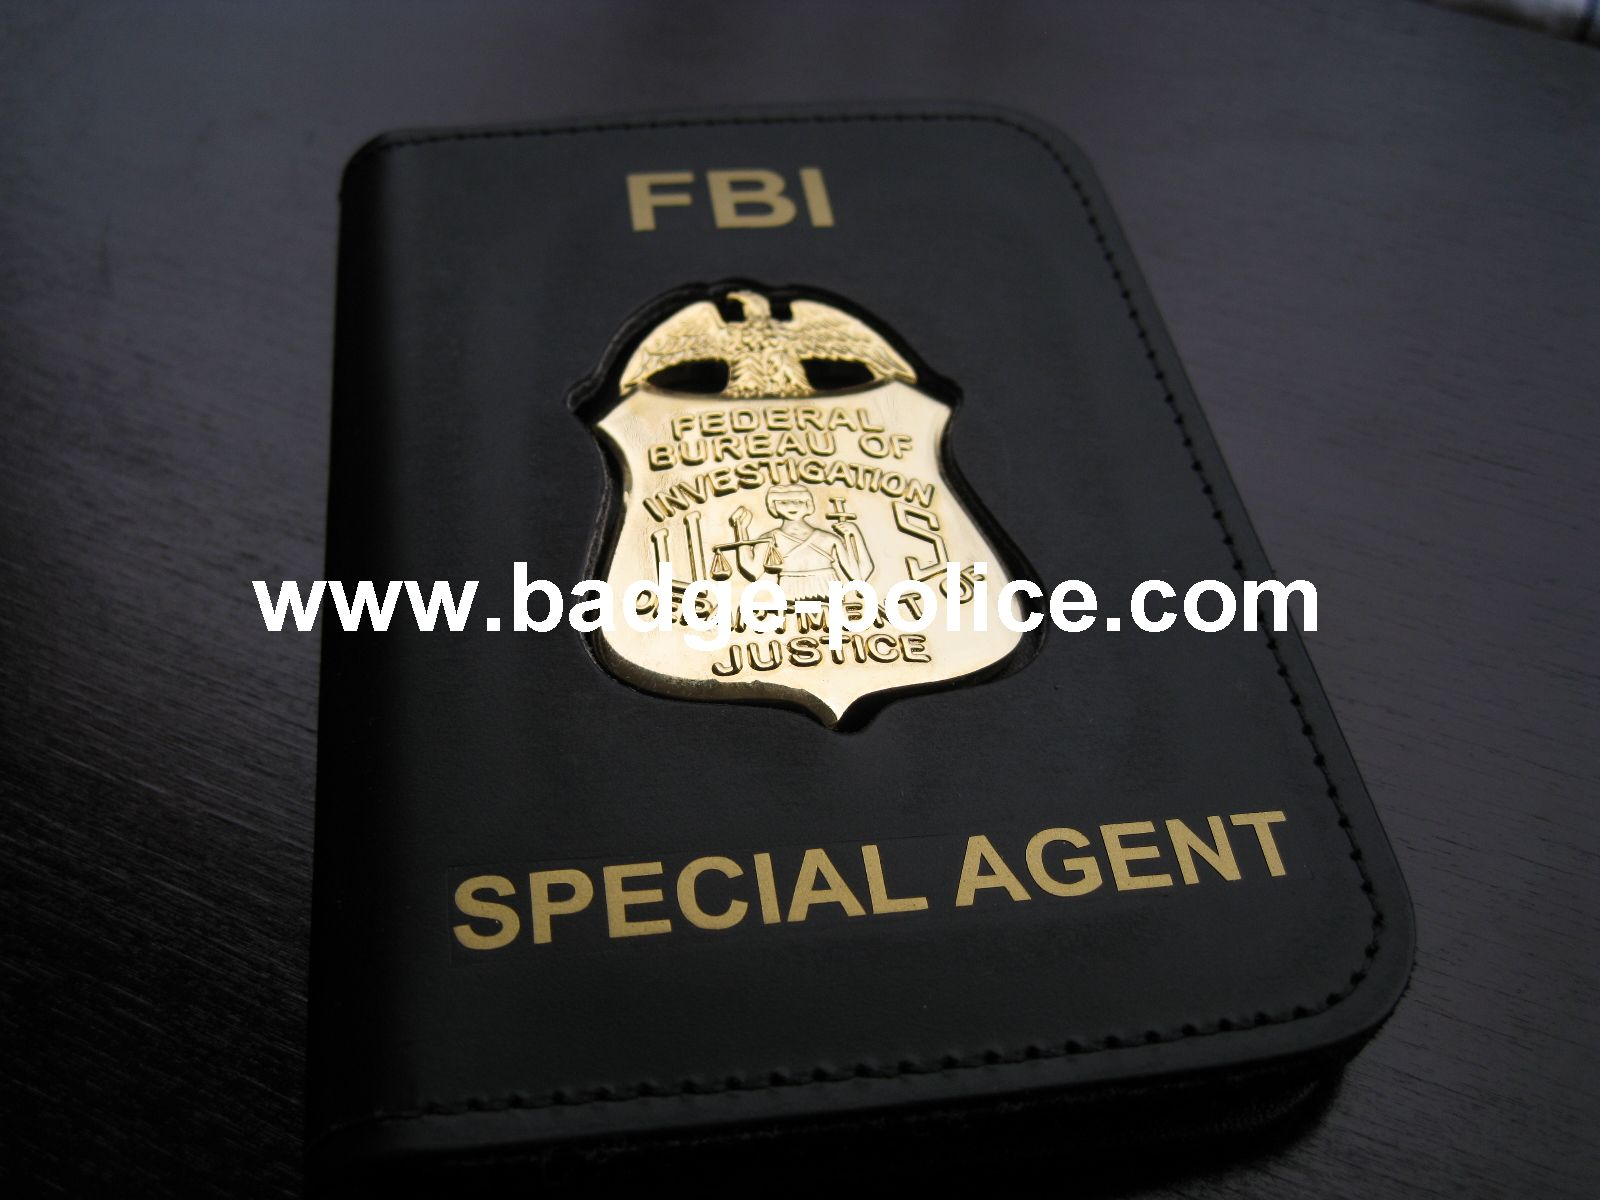 how to become a special agent fbi